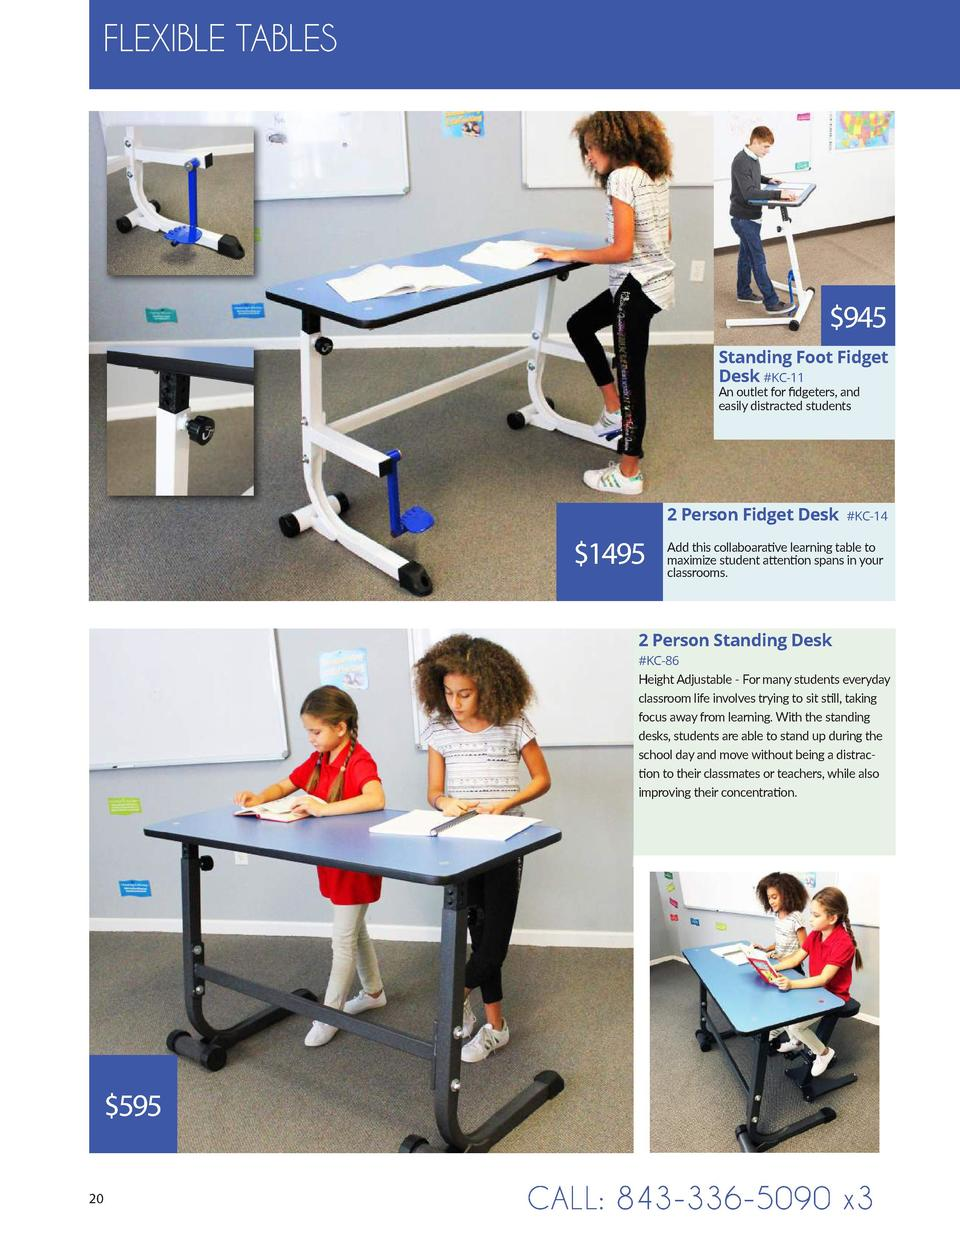 FLEXIBLE TABLES   945 Standing Foot Fidget Desk  KC-11 An outlet for fidgeters, and easily distracted students  2 Person F...